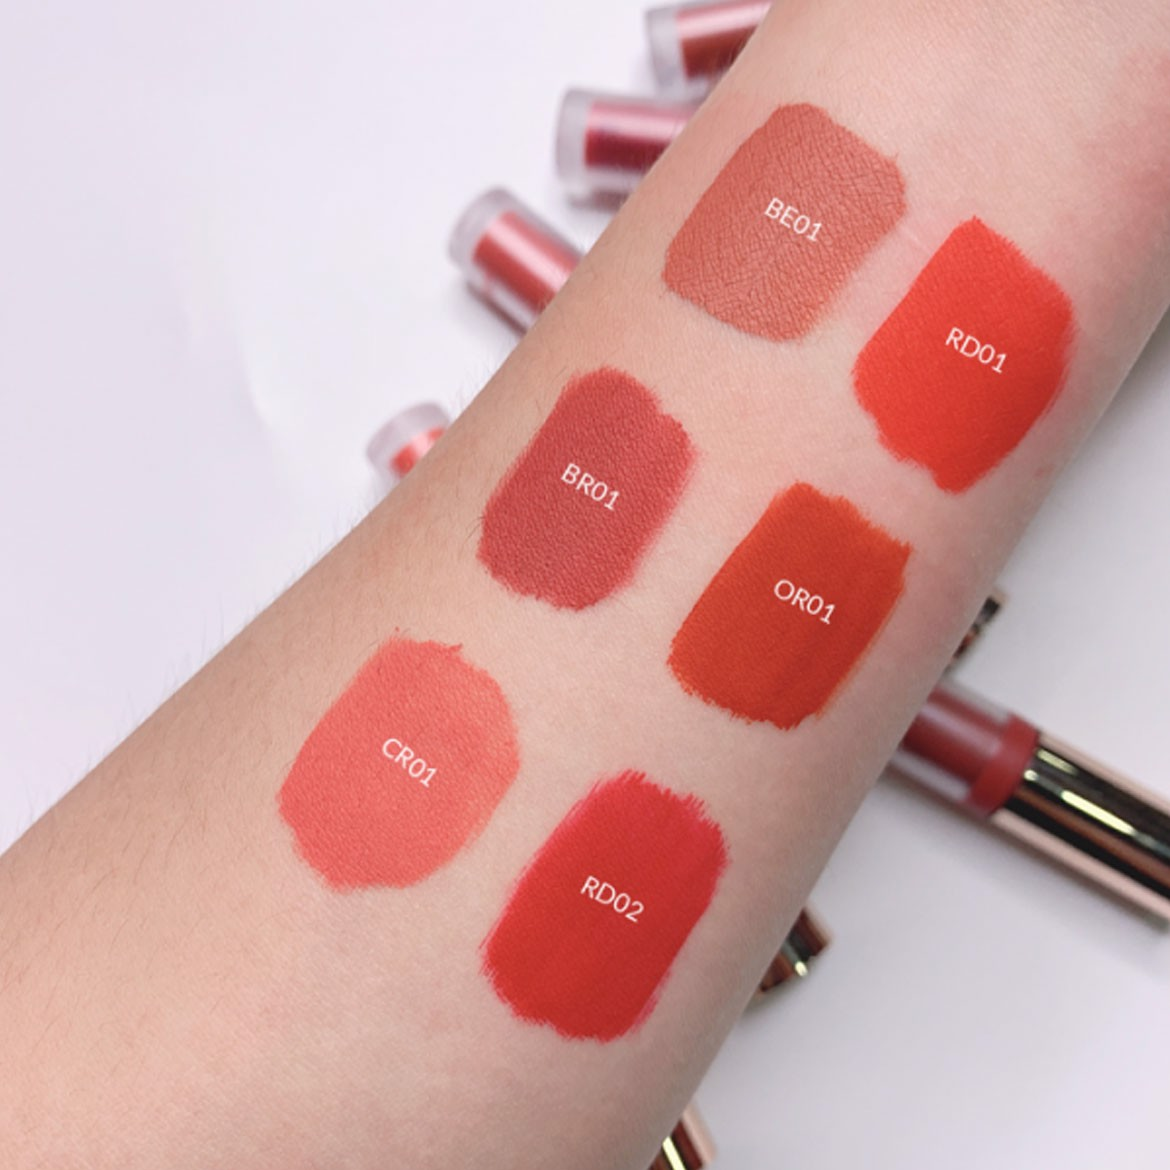 [New] Son Kem Lì The Saem Matte Stay Lacquer